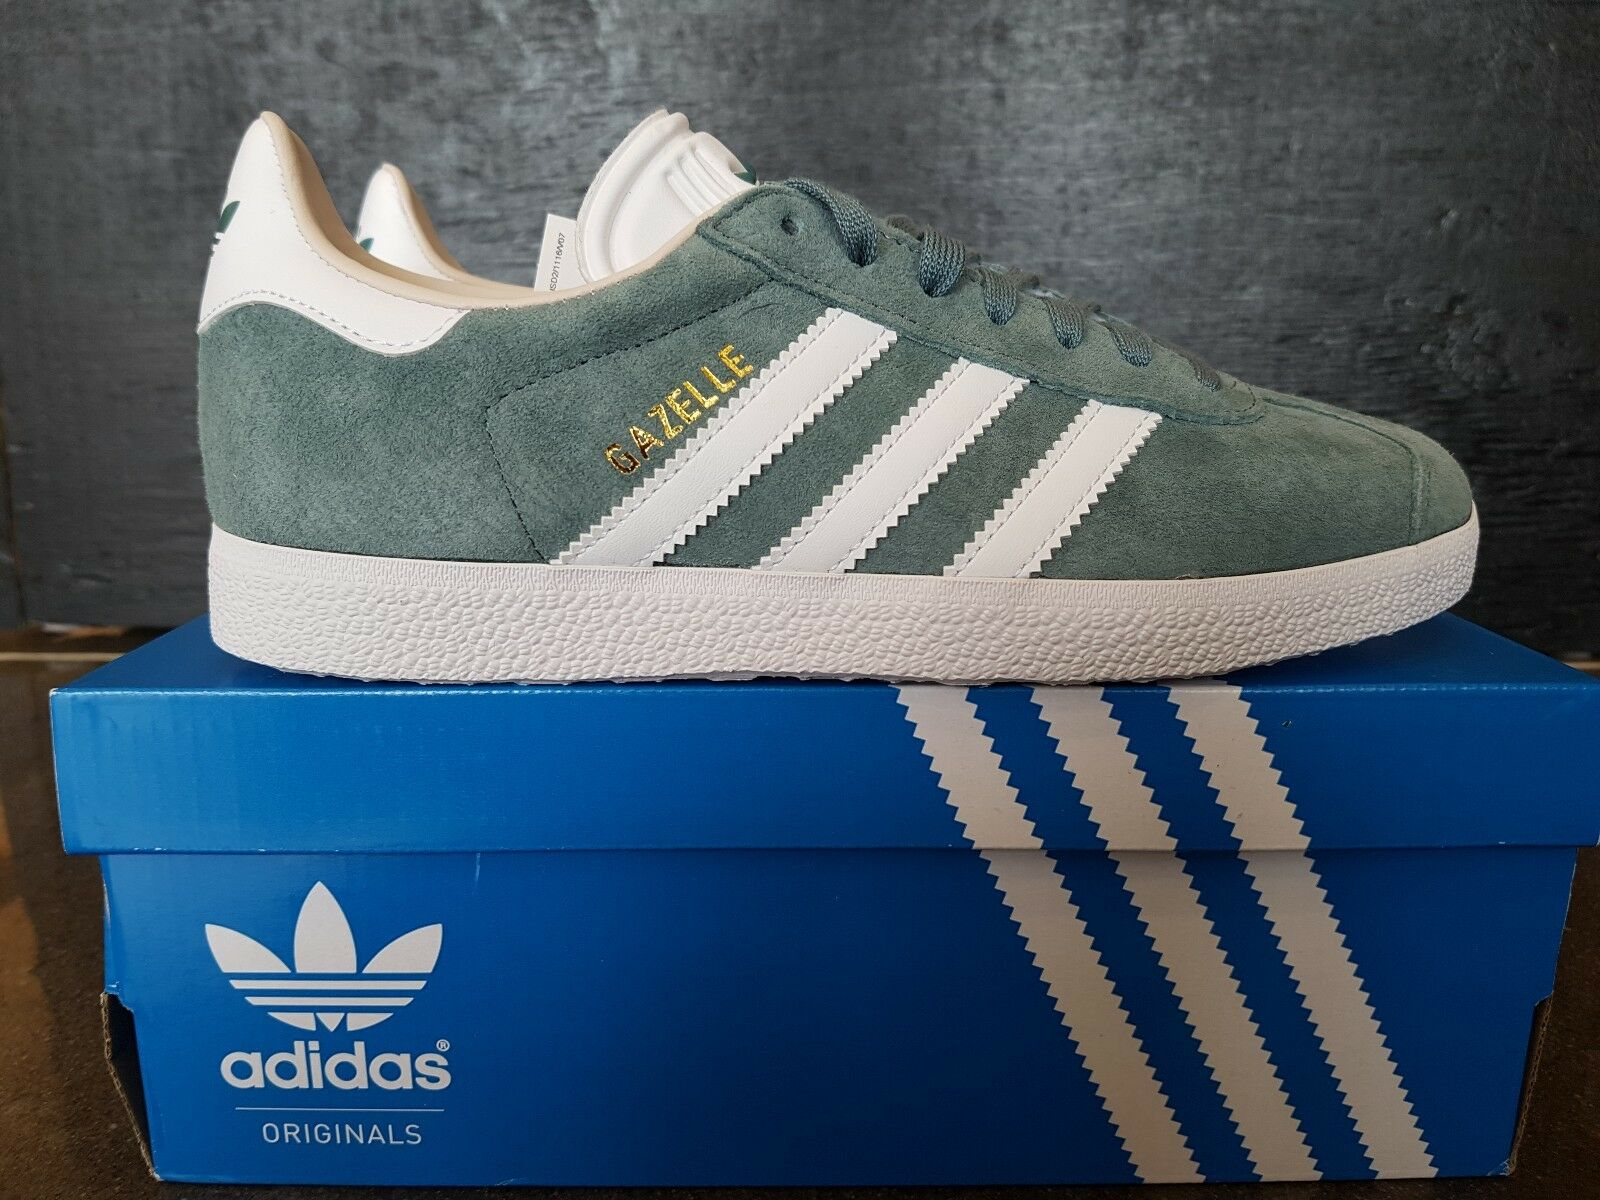 NEW IN THE BOX ADIDAS GAZELLE Donna B41661 RAW GREEN FOR Donna